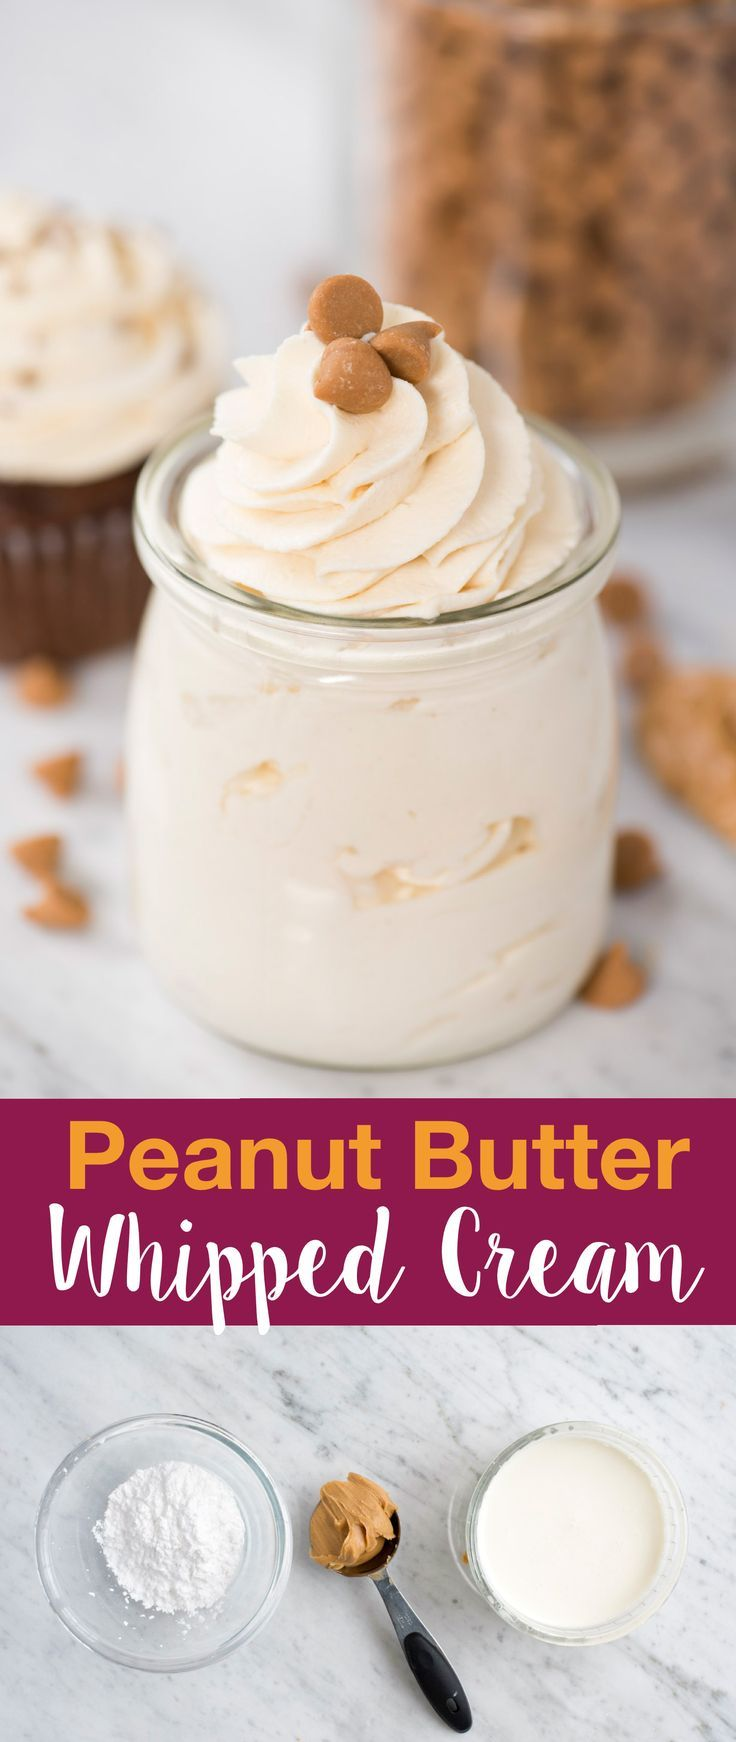 Easy to make peanut butter whipped cream frosting!…